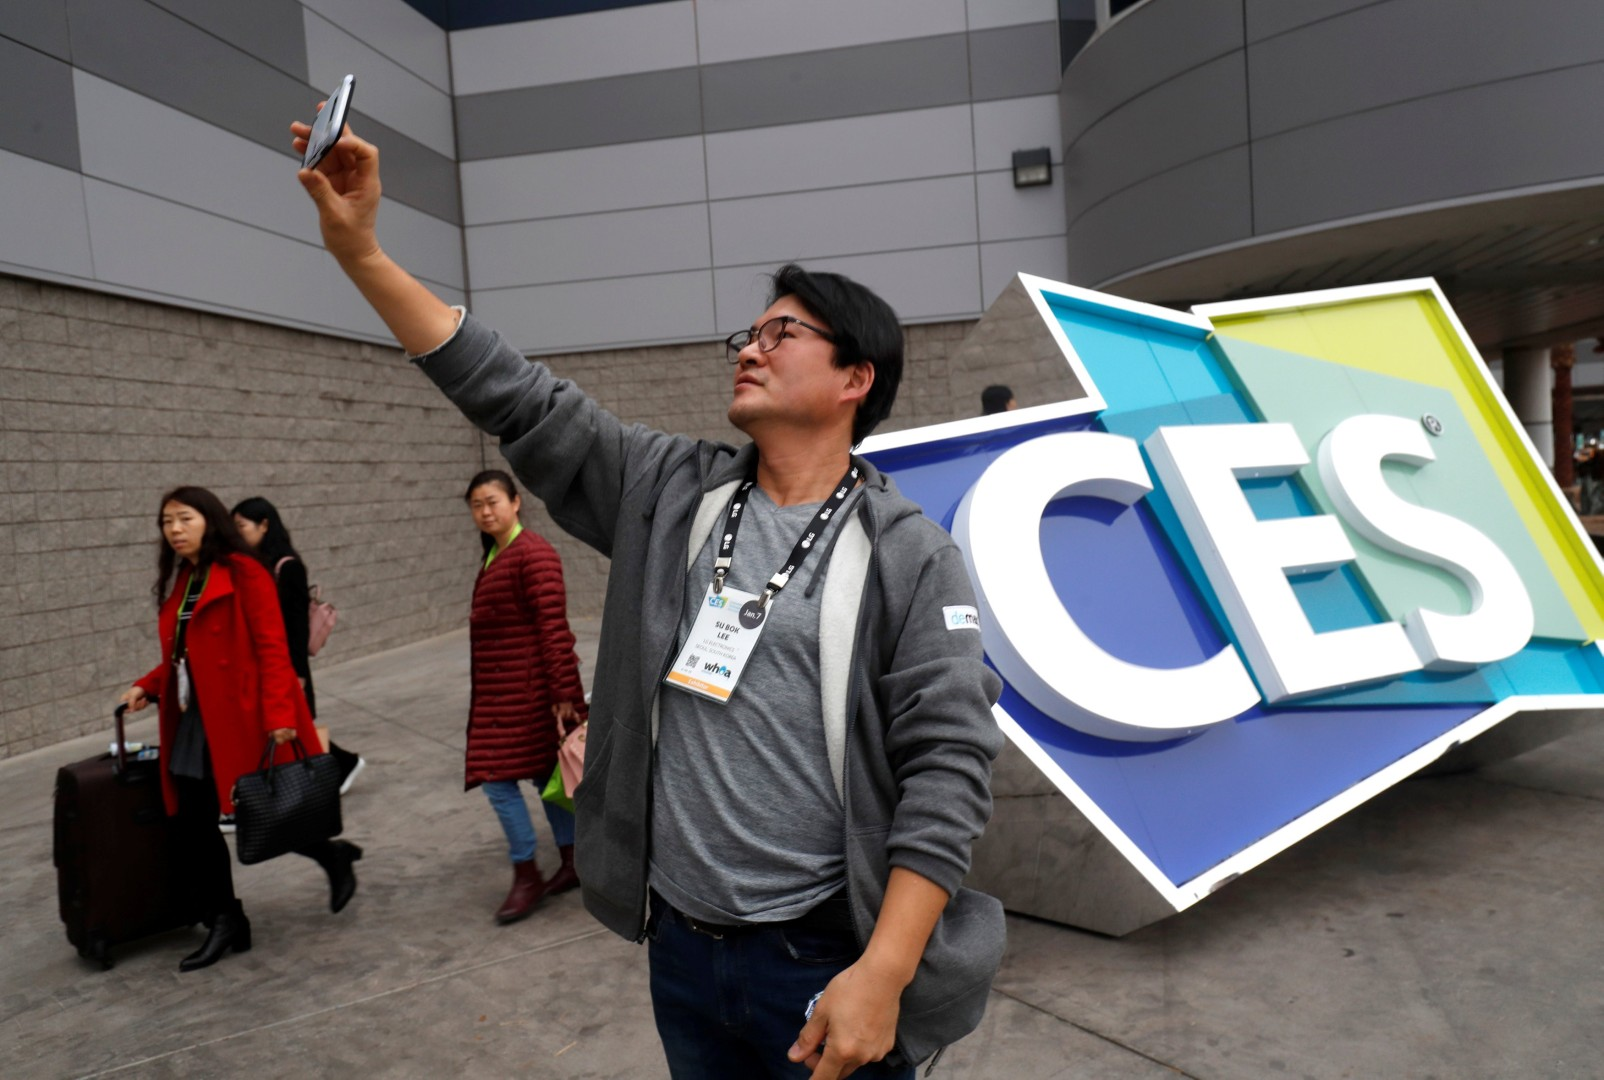 CES becomes the Chinese electronics show as Shenzhen